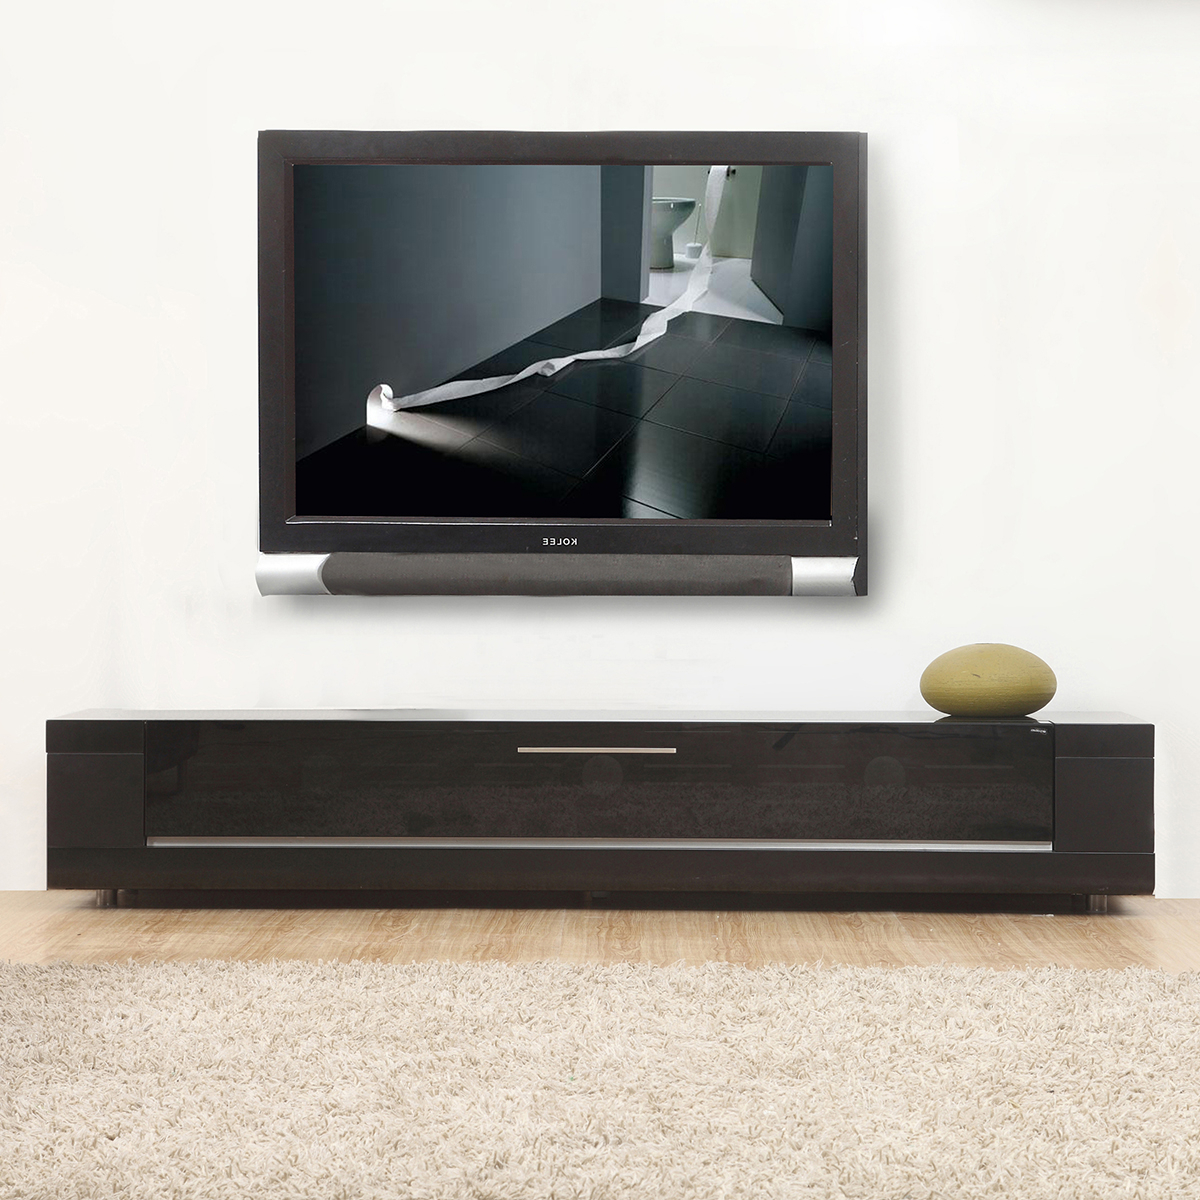 Tv Television Stands 71 & Wider With Regard To Noah 75 Inch Tv Stands (View 19 of 20)